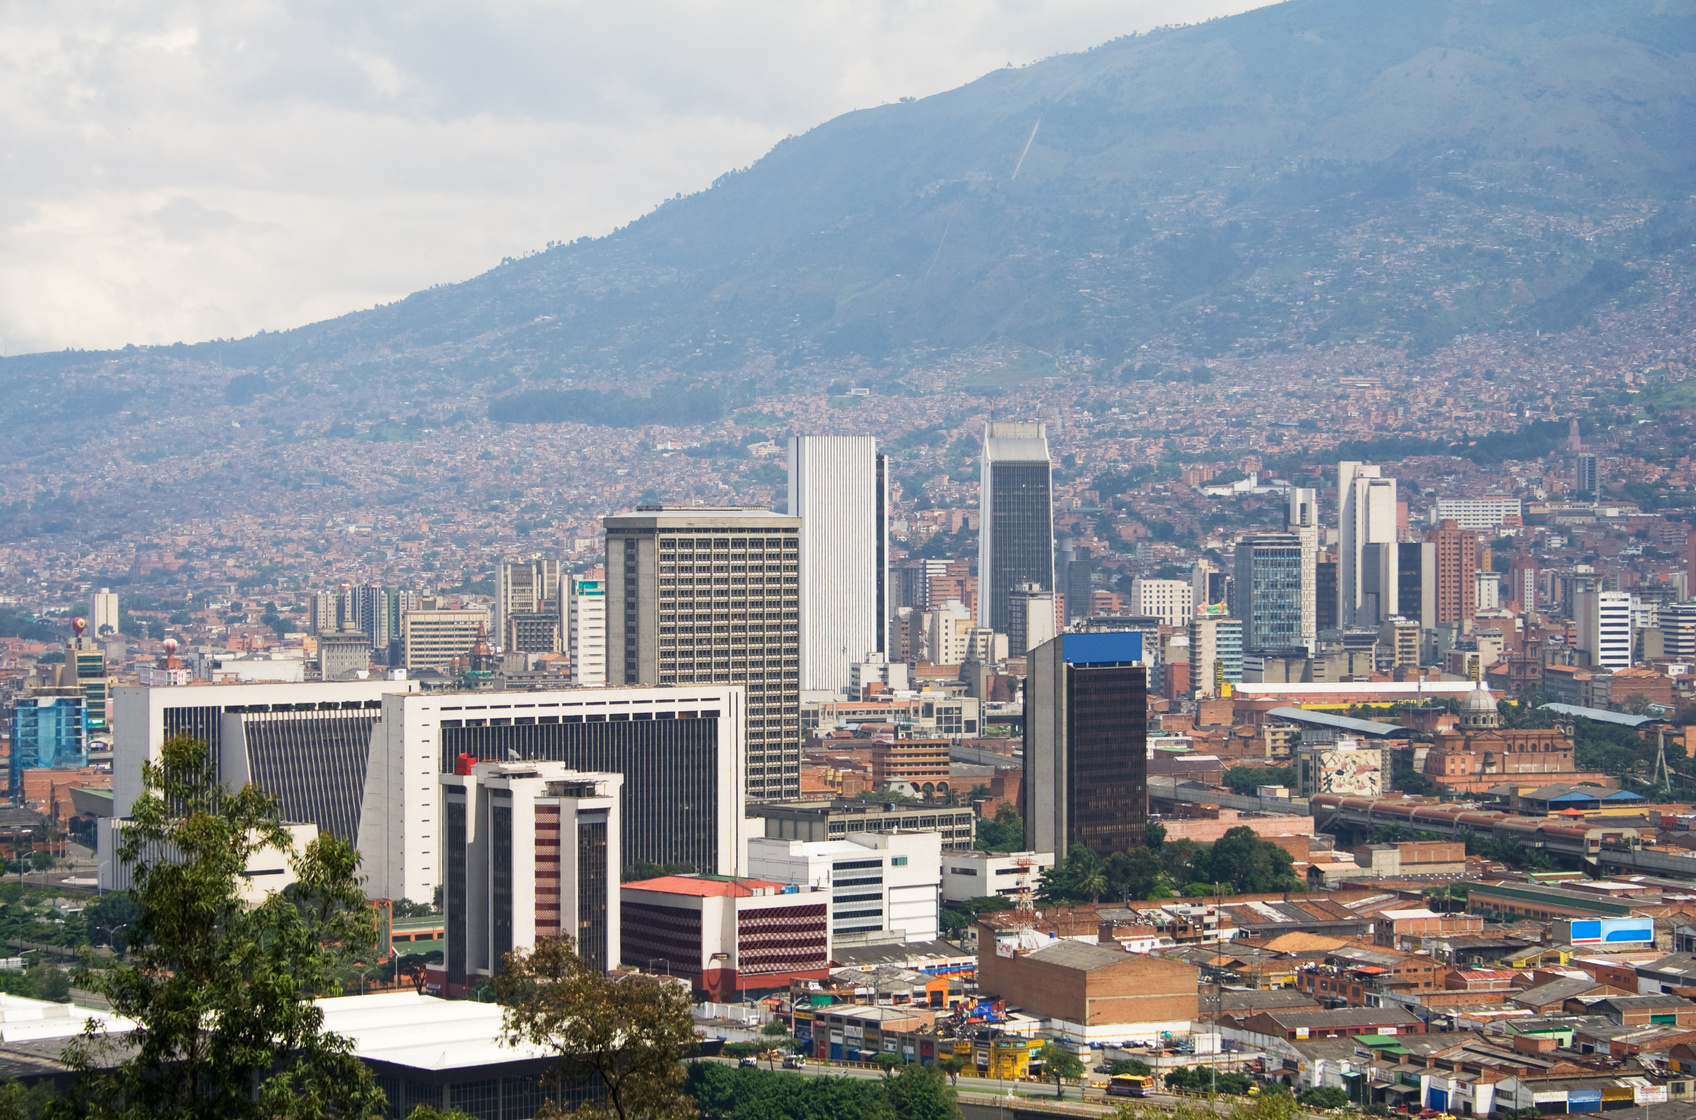 The Top 10 Restaurants In Medellín, Columbia